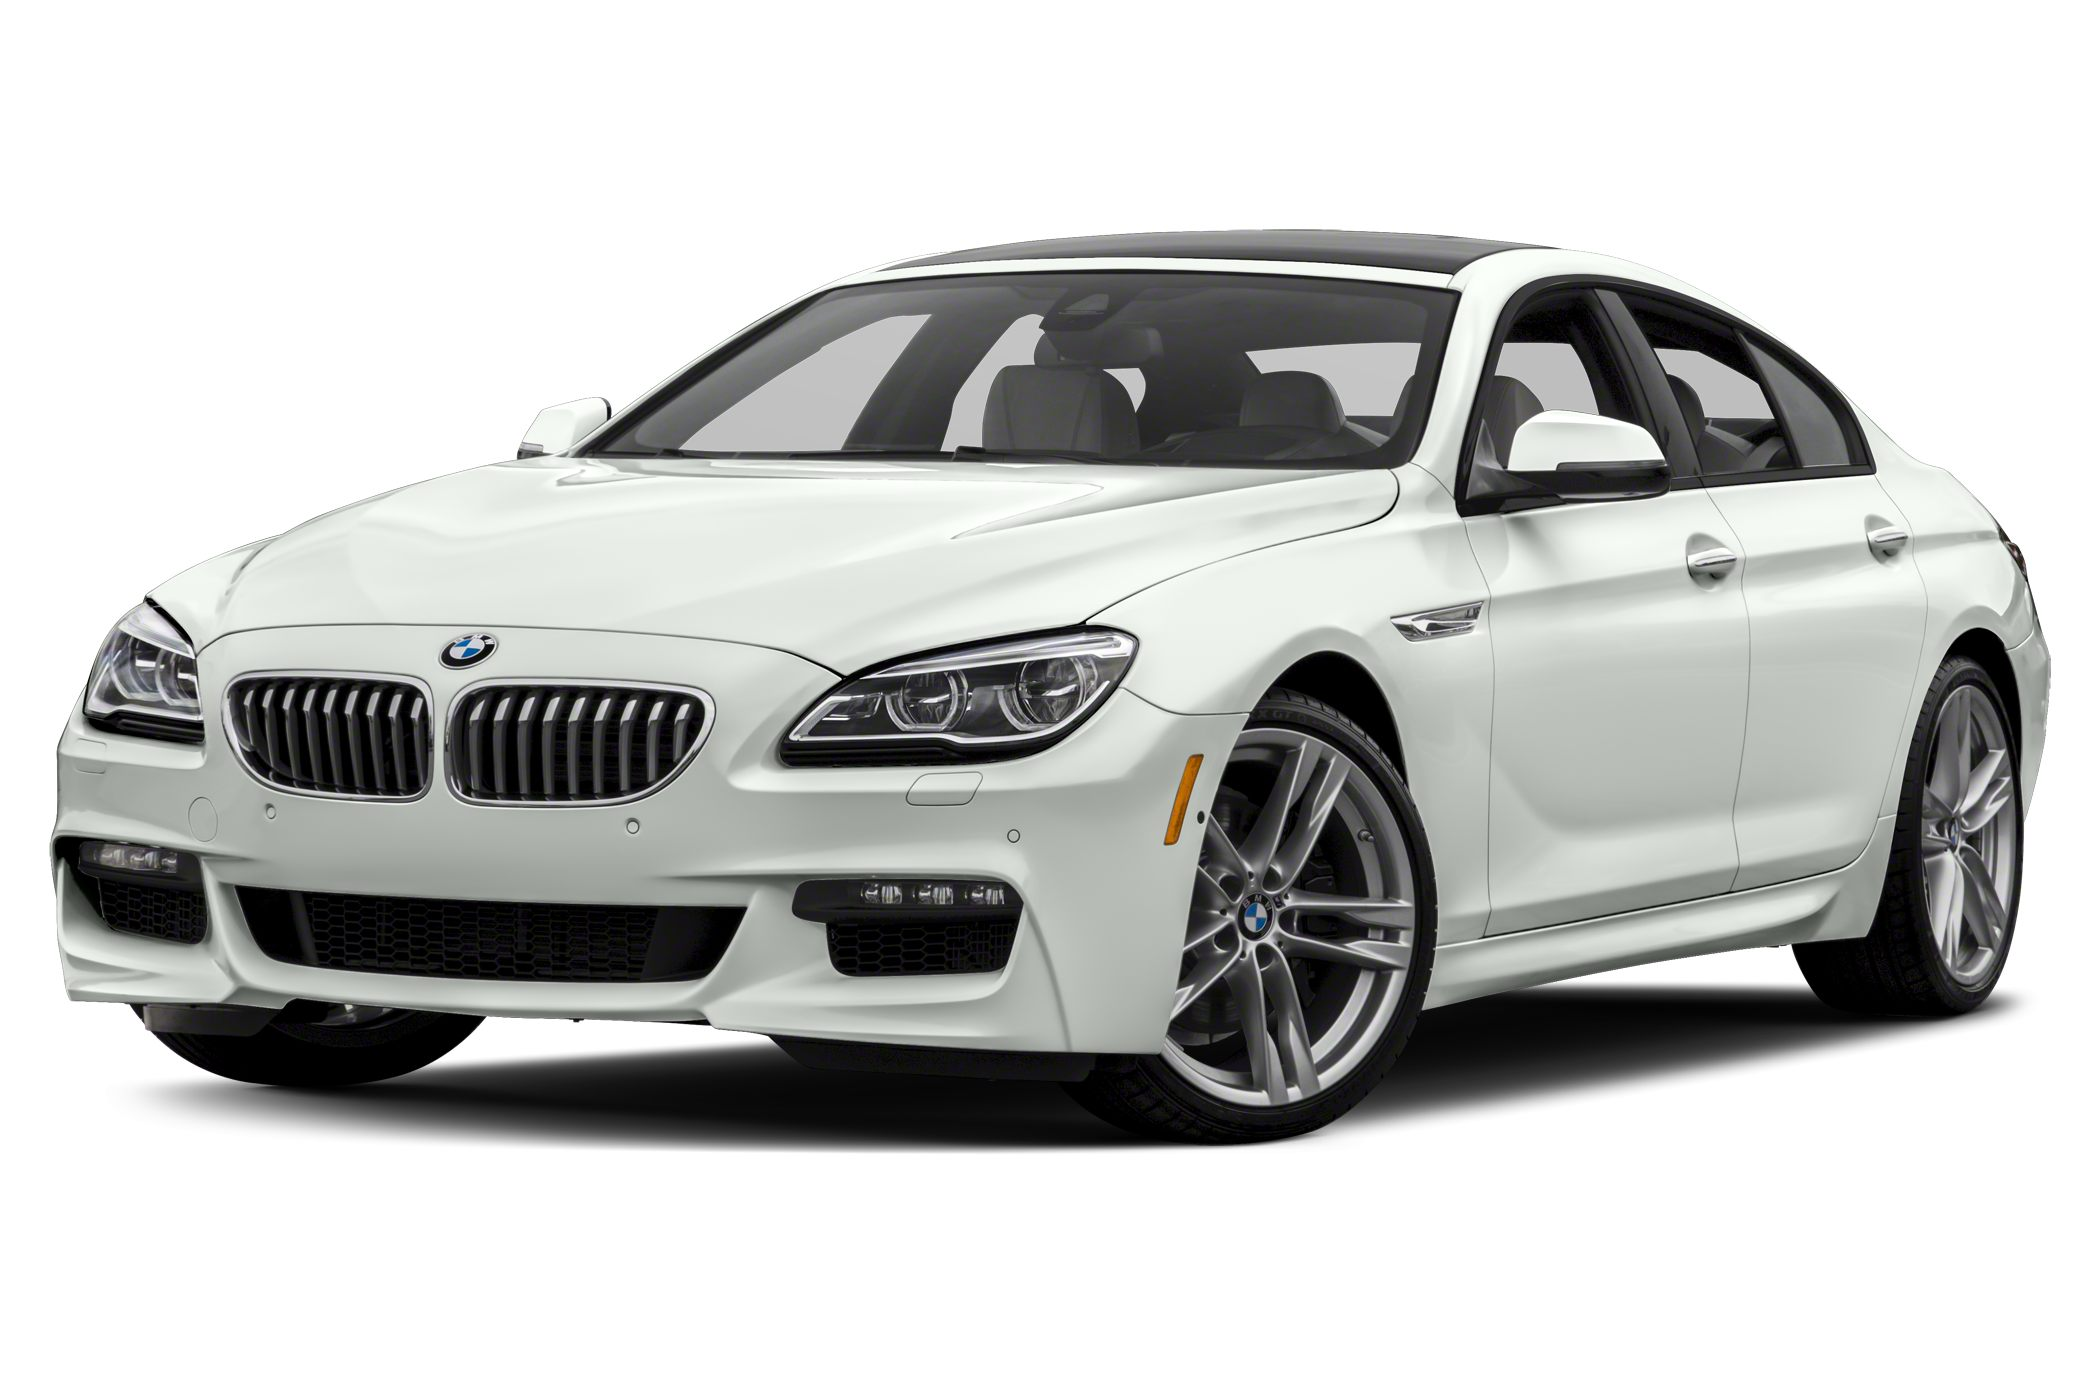 2017 Bmw 650 Gran Coupe Pricing And Specs